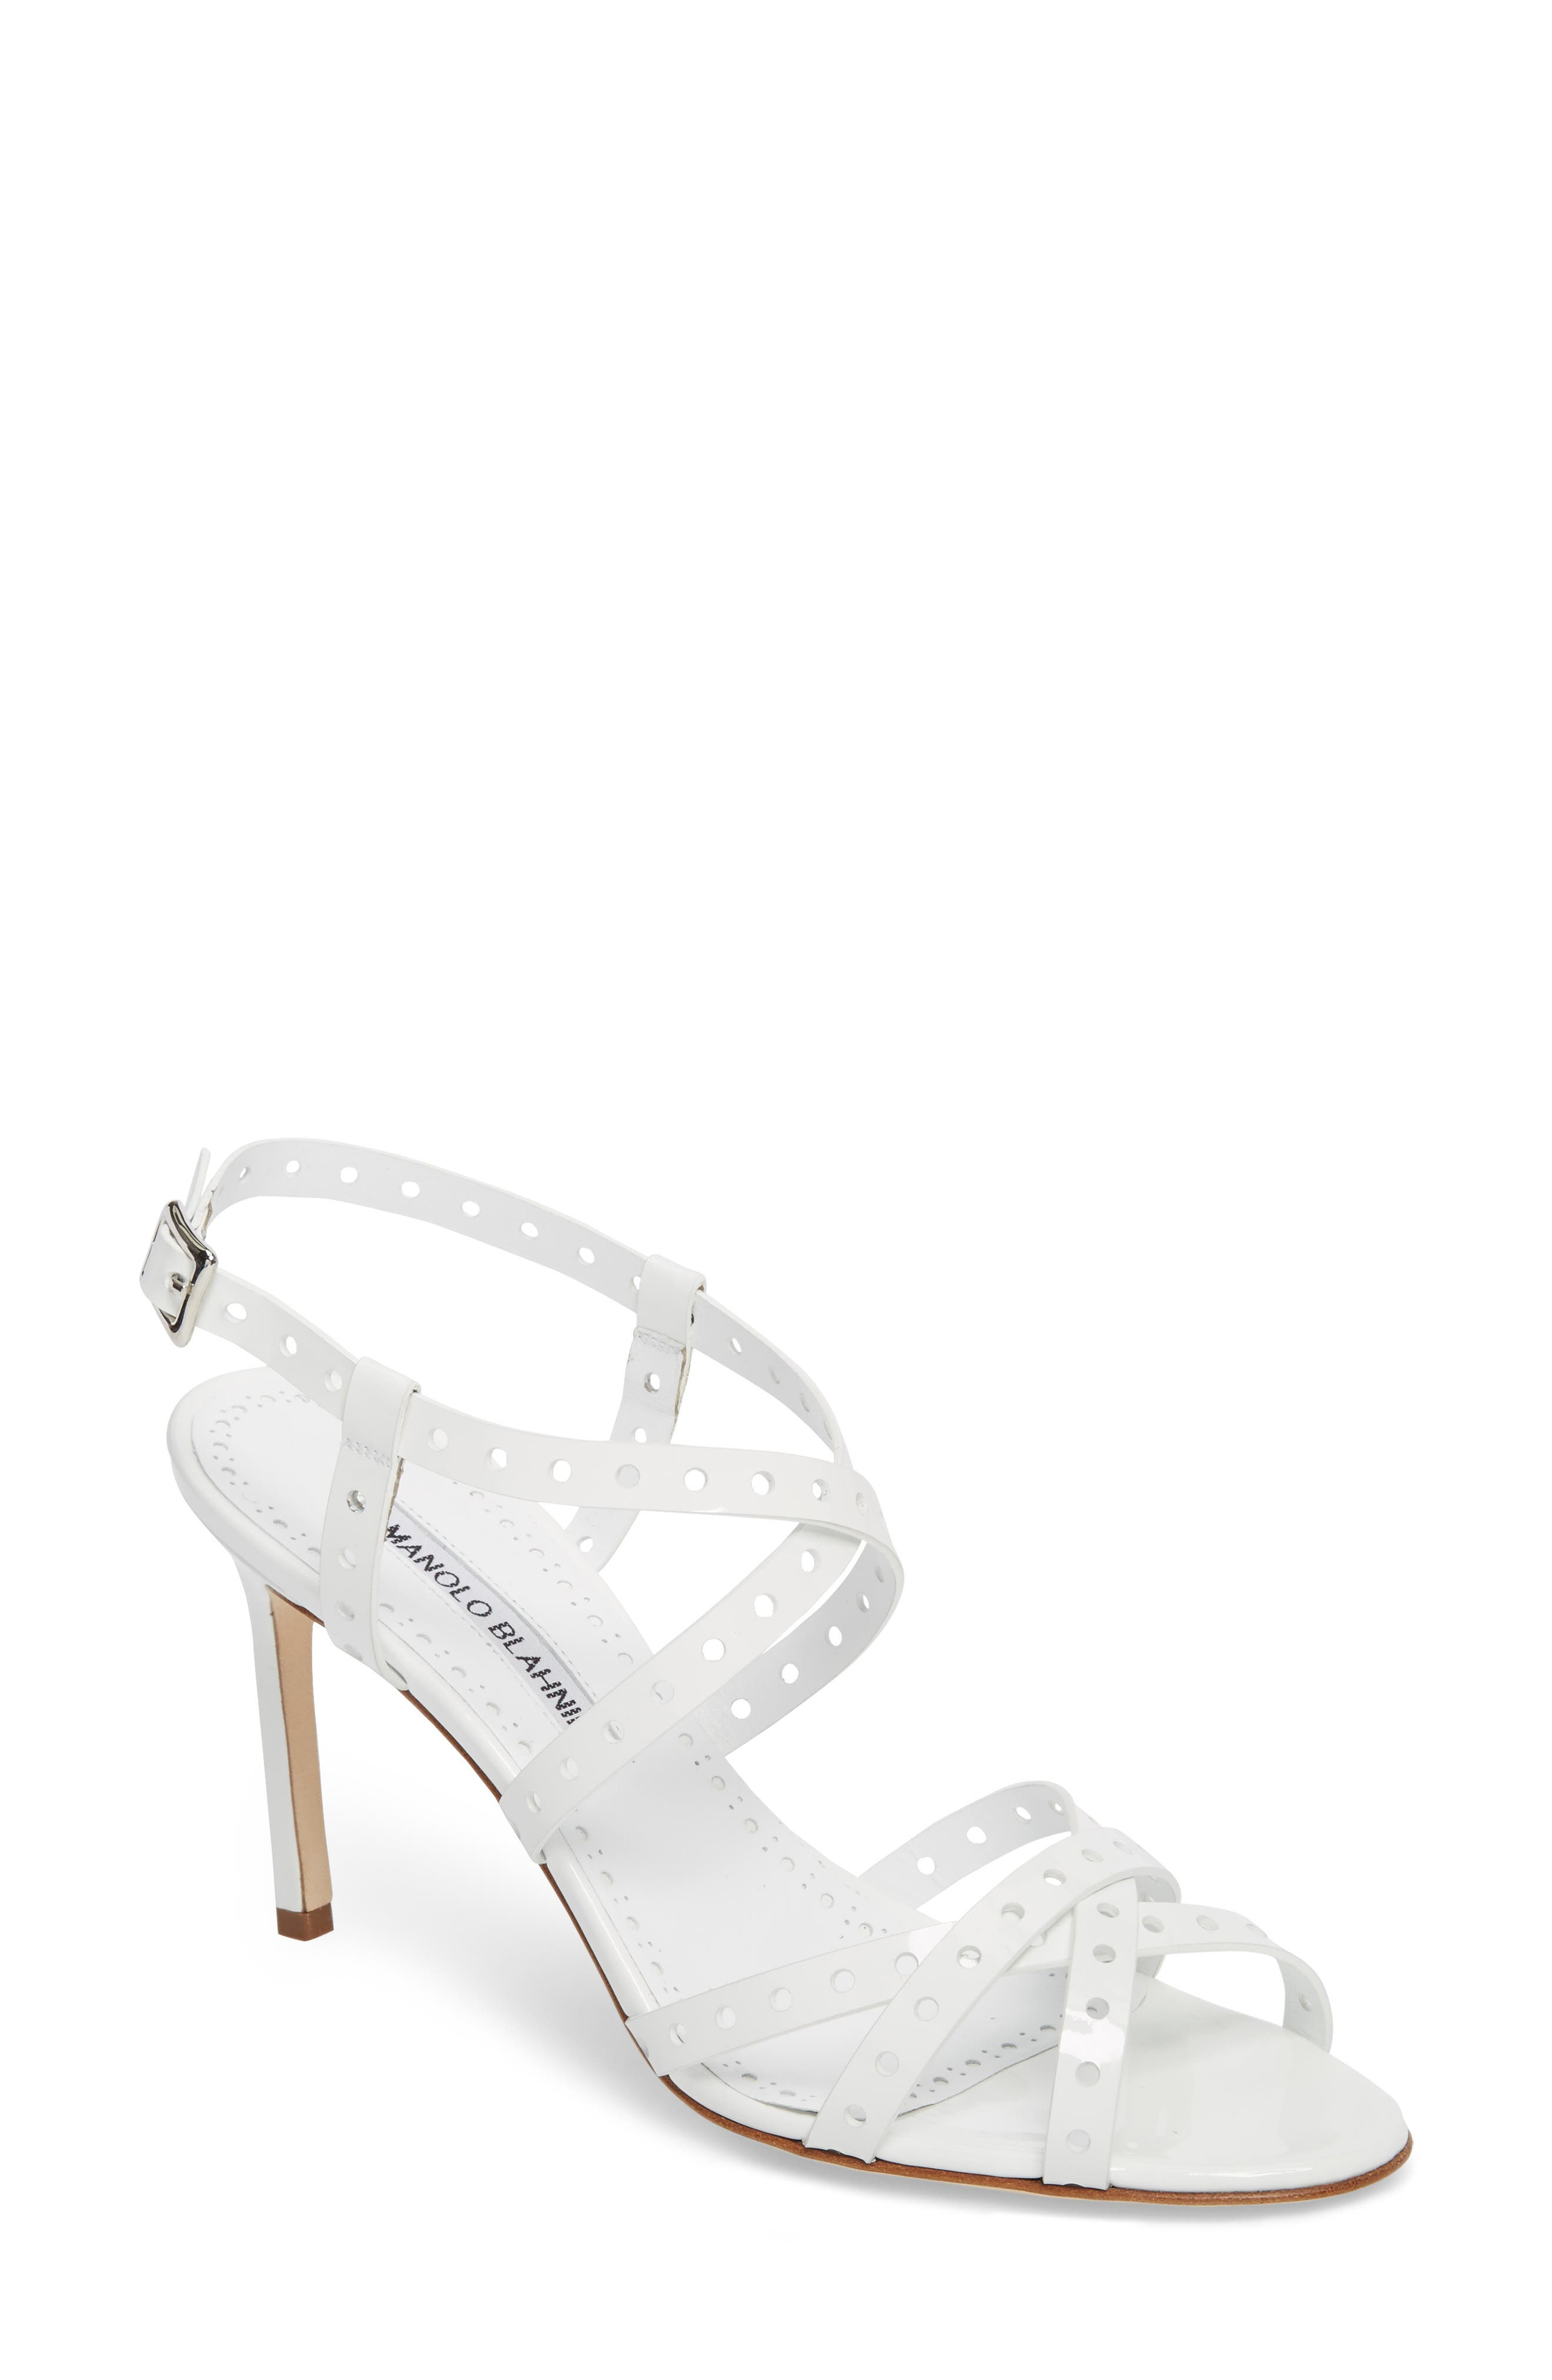 Alternate Image 1 Selected - Manolo Blahnik Demure Perforated Strappy Sandal (Women)